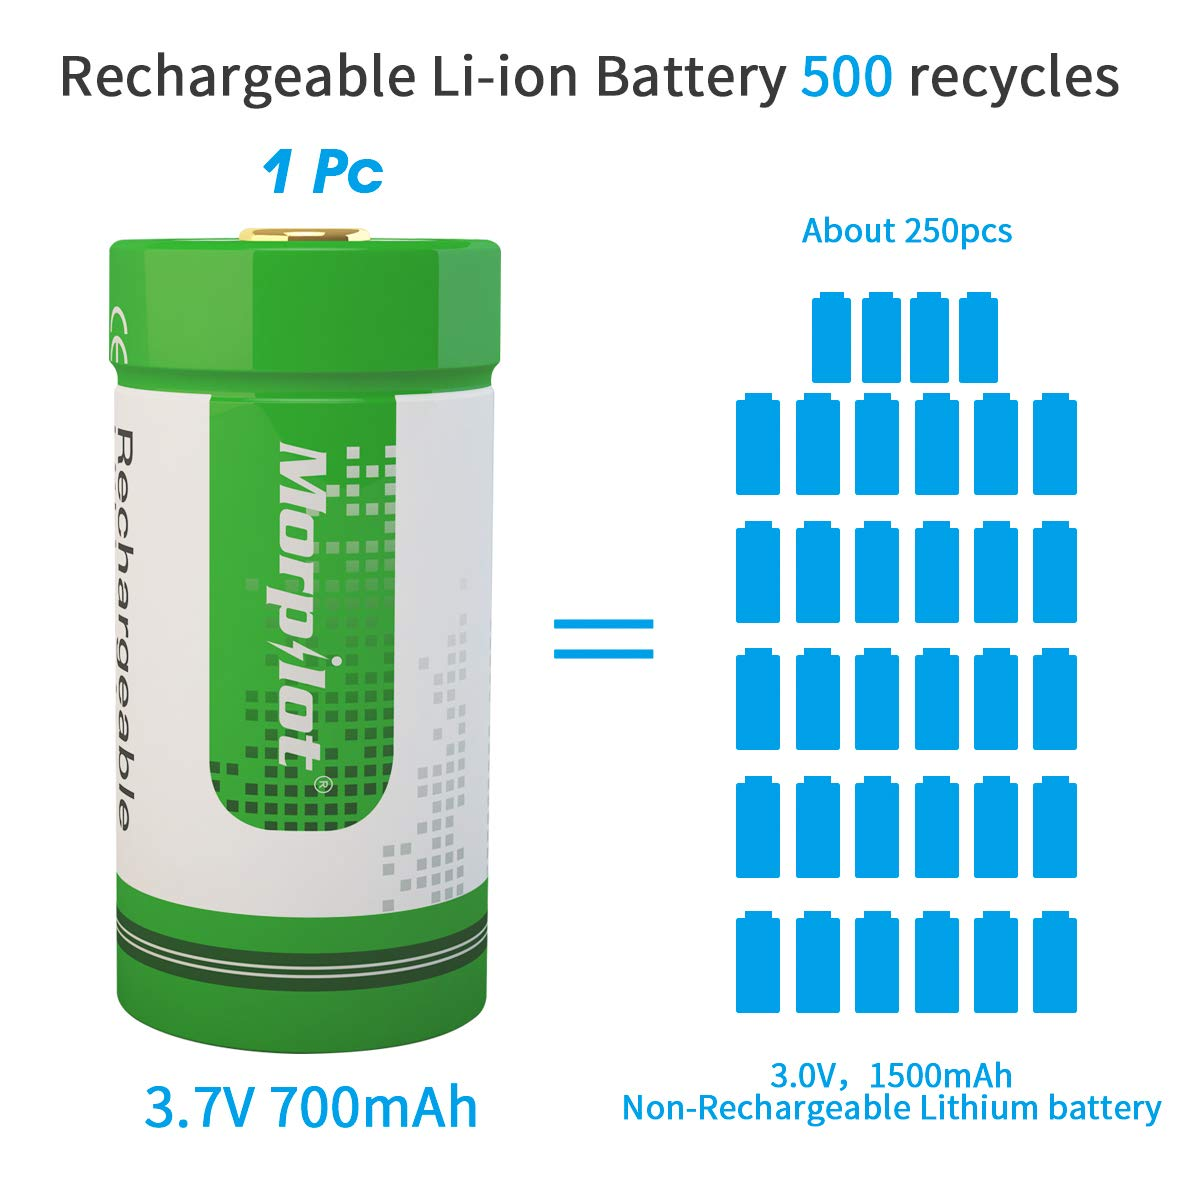 Arlo Rechargeable Batteries CR123, morpilot 3.7v 700mah RCR123A Li-ion Battery and Charger Compatible with arlo HD cameras VMS3030/3230/3330/3430 (8 Pack)